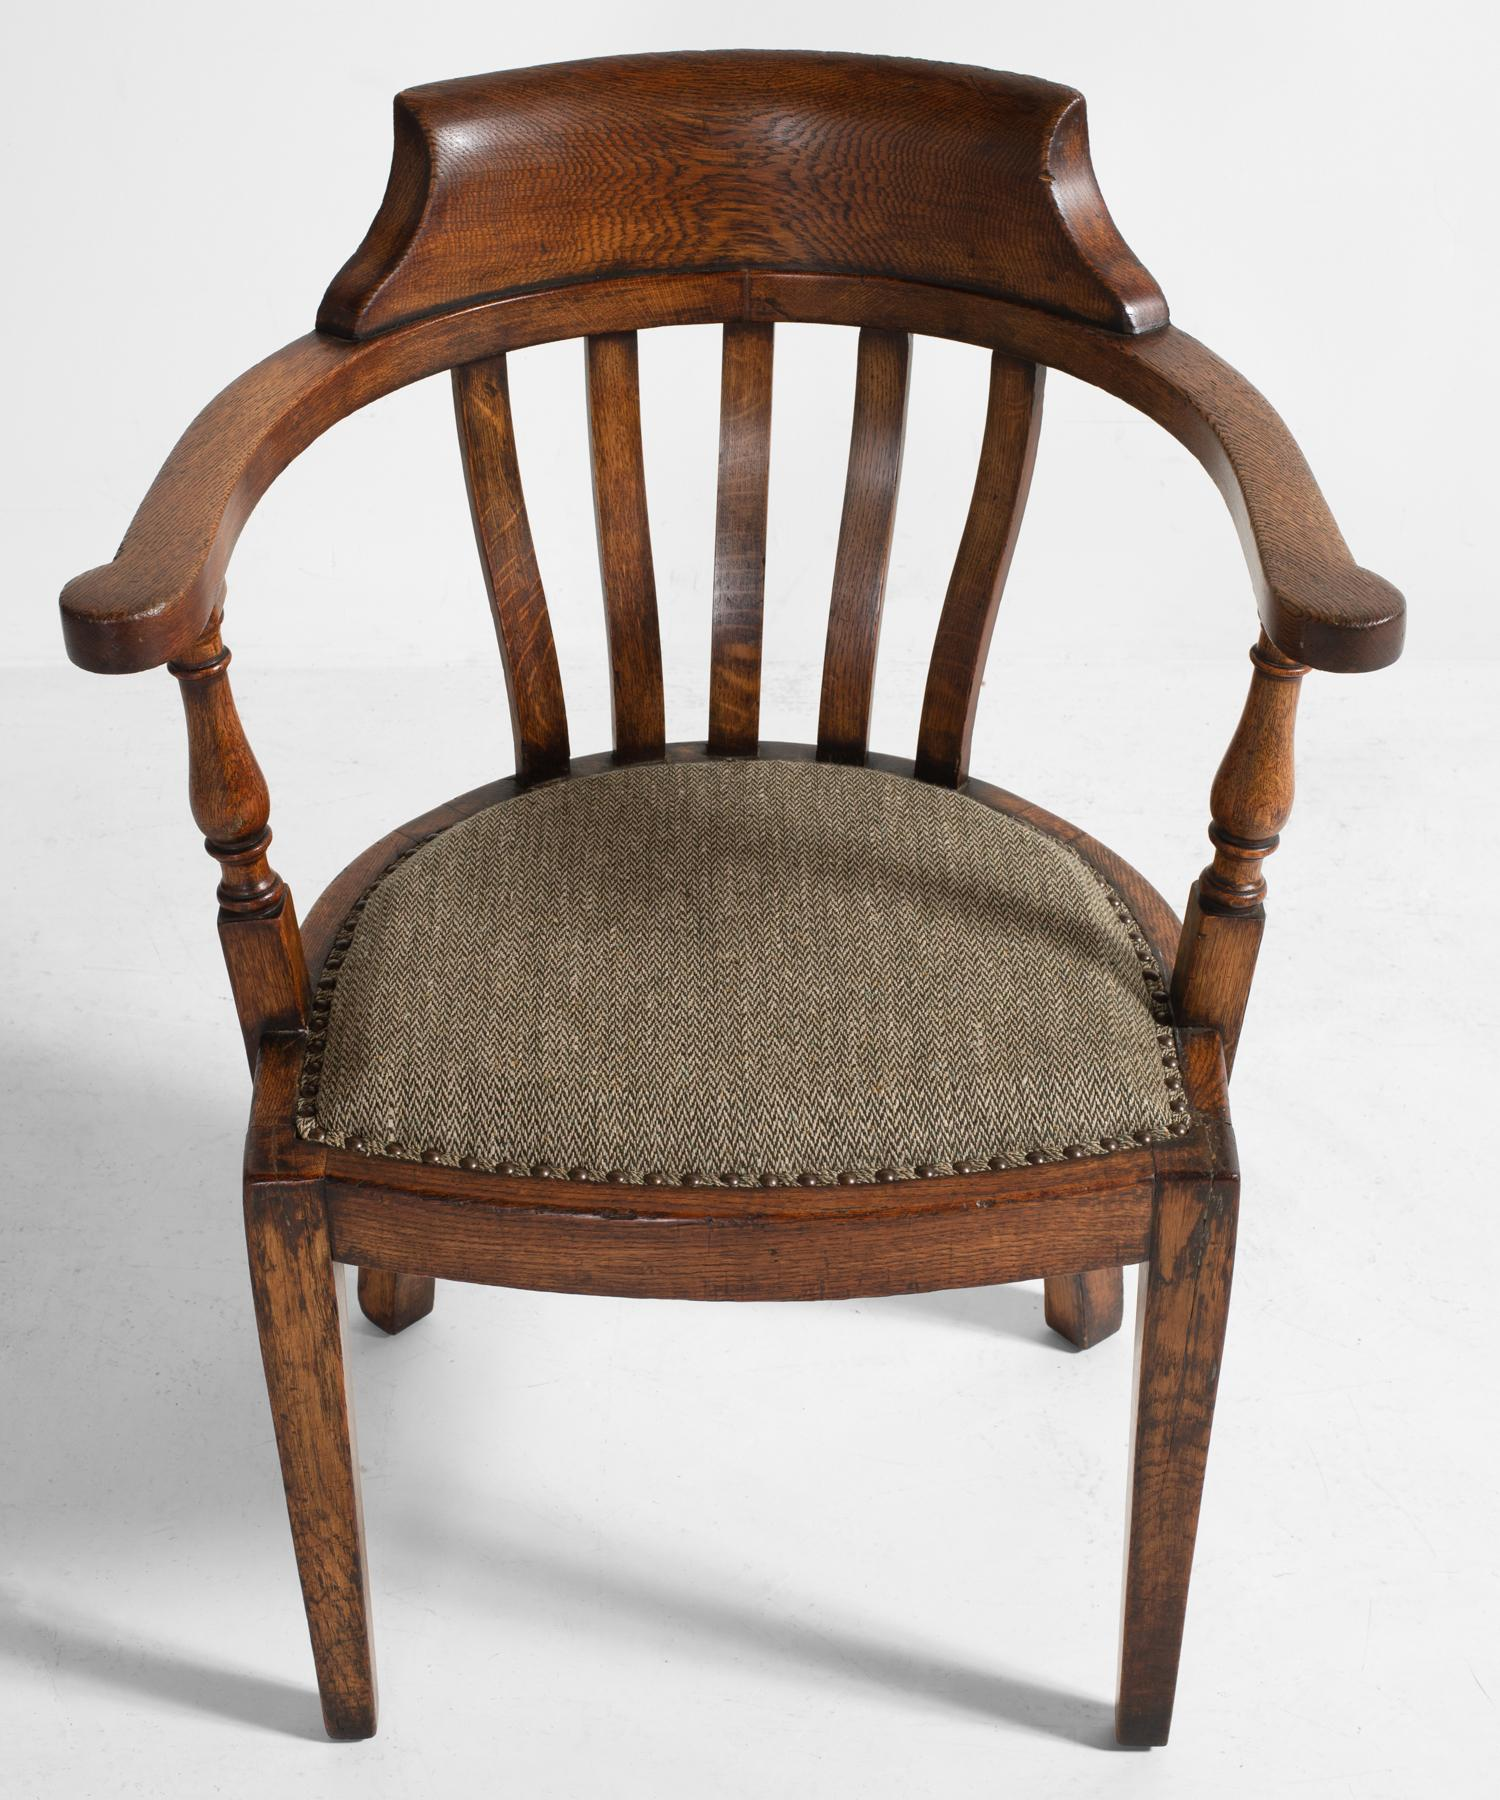 Merveilleux Edwardian Oak Captains Chair, Circa 1900 In Excellent Condition For Sale In  Culver City,